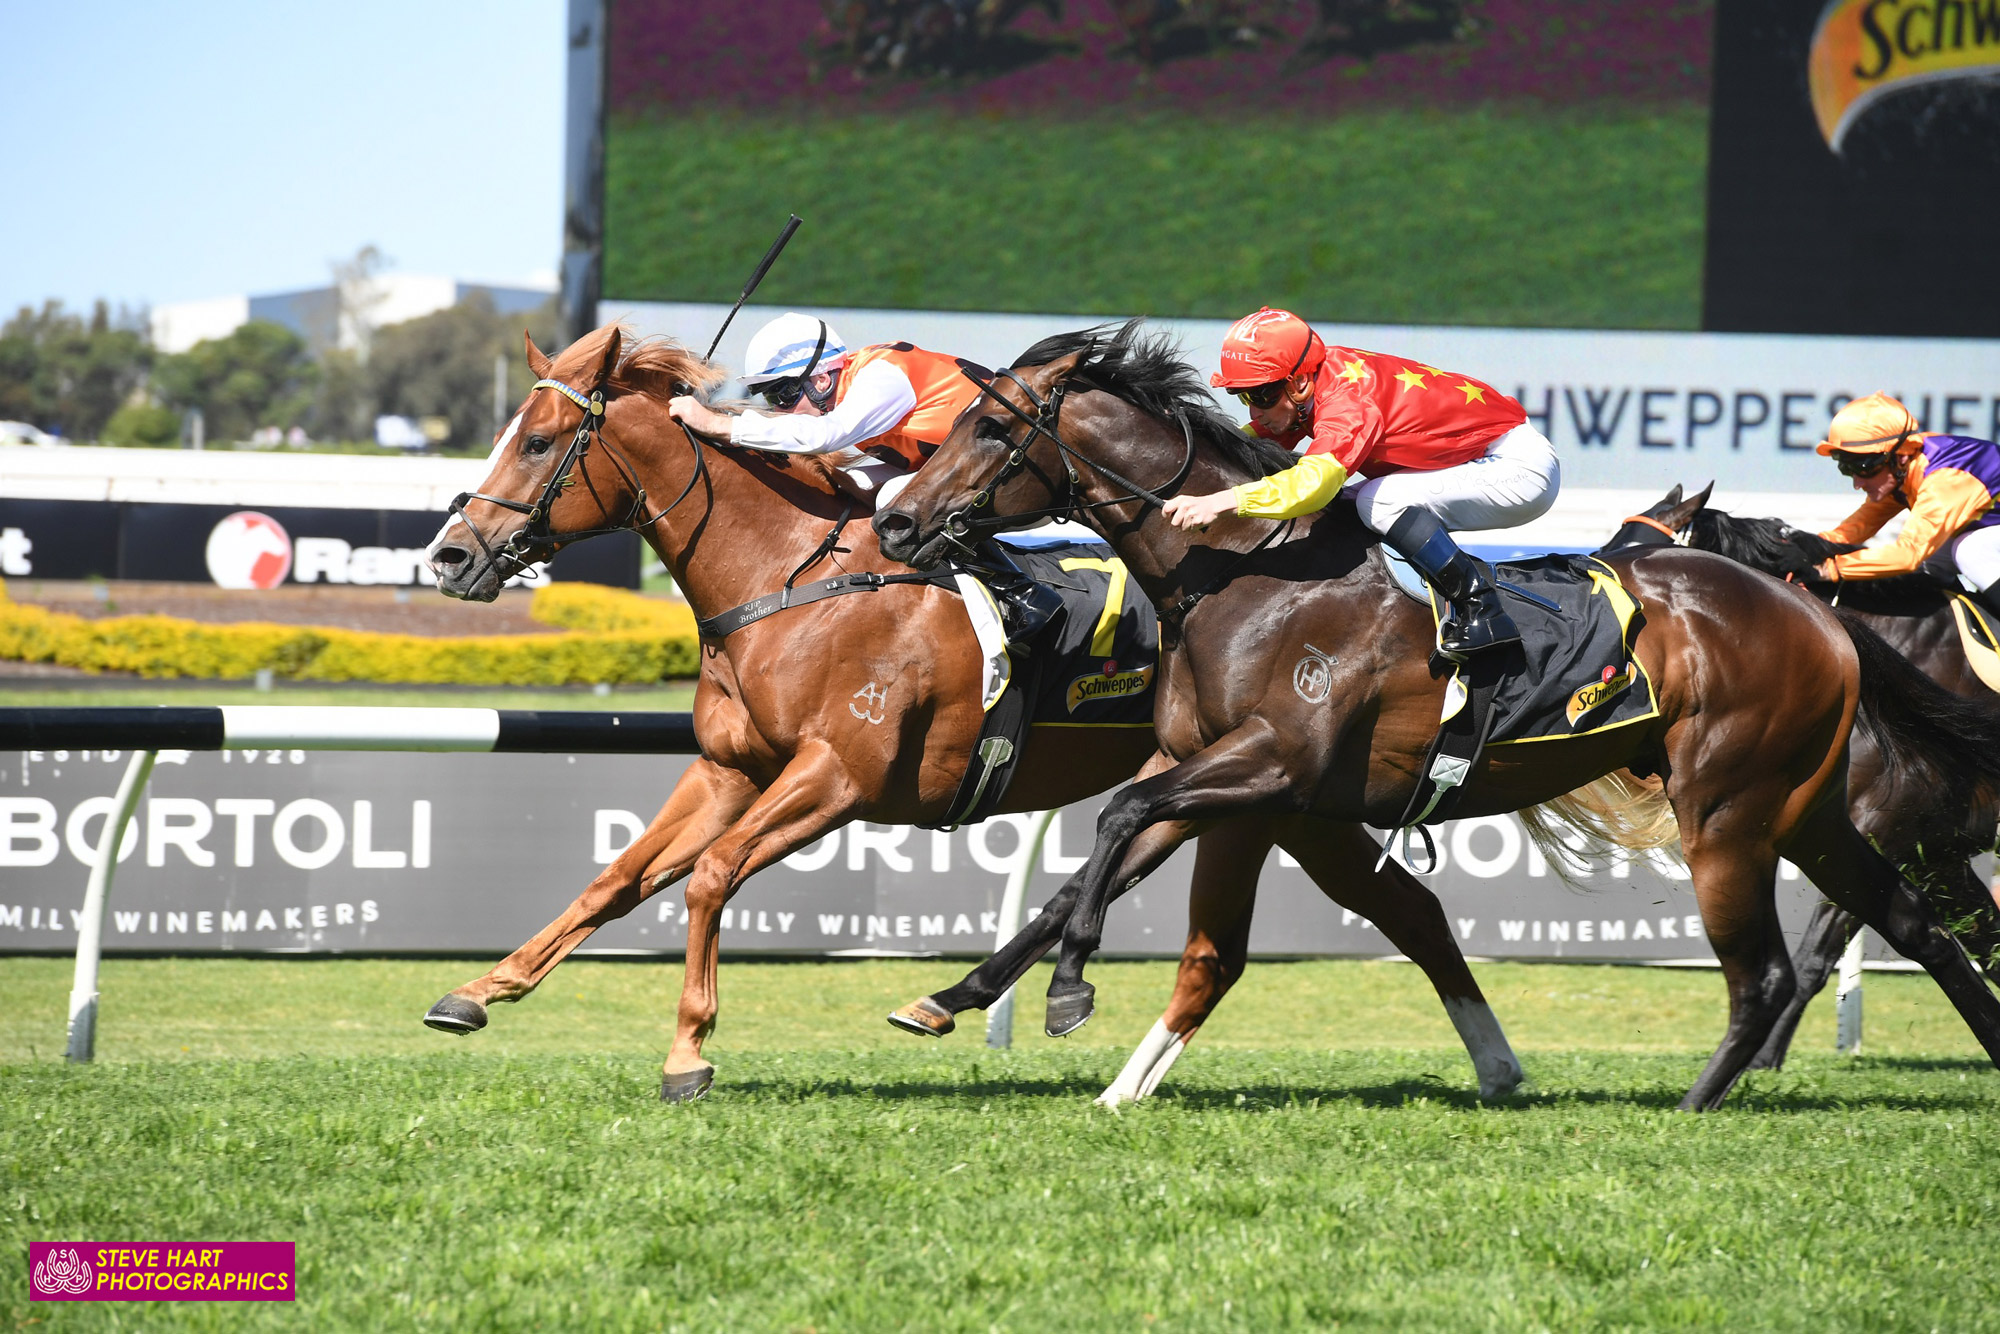 Image courtesy Steve Hart Photographics - Standout overcame a significant class rise to win the Heritage Stakes.